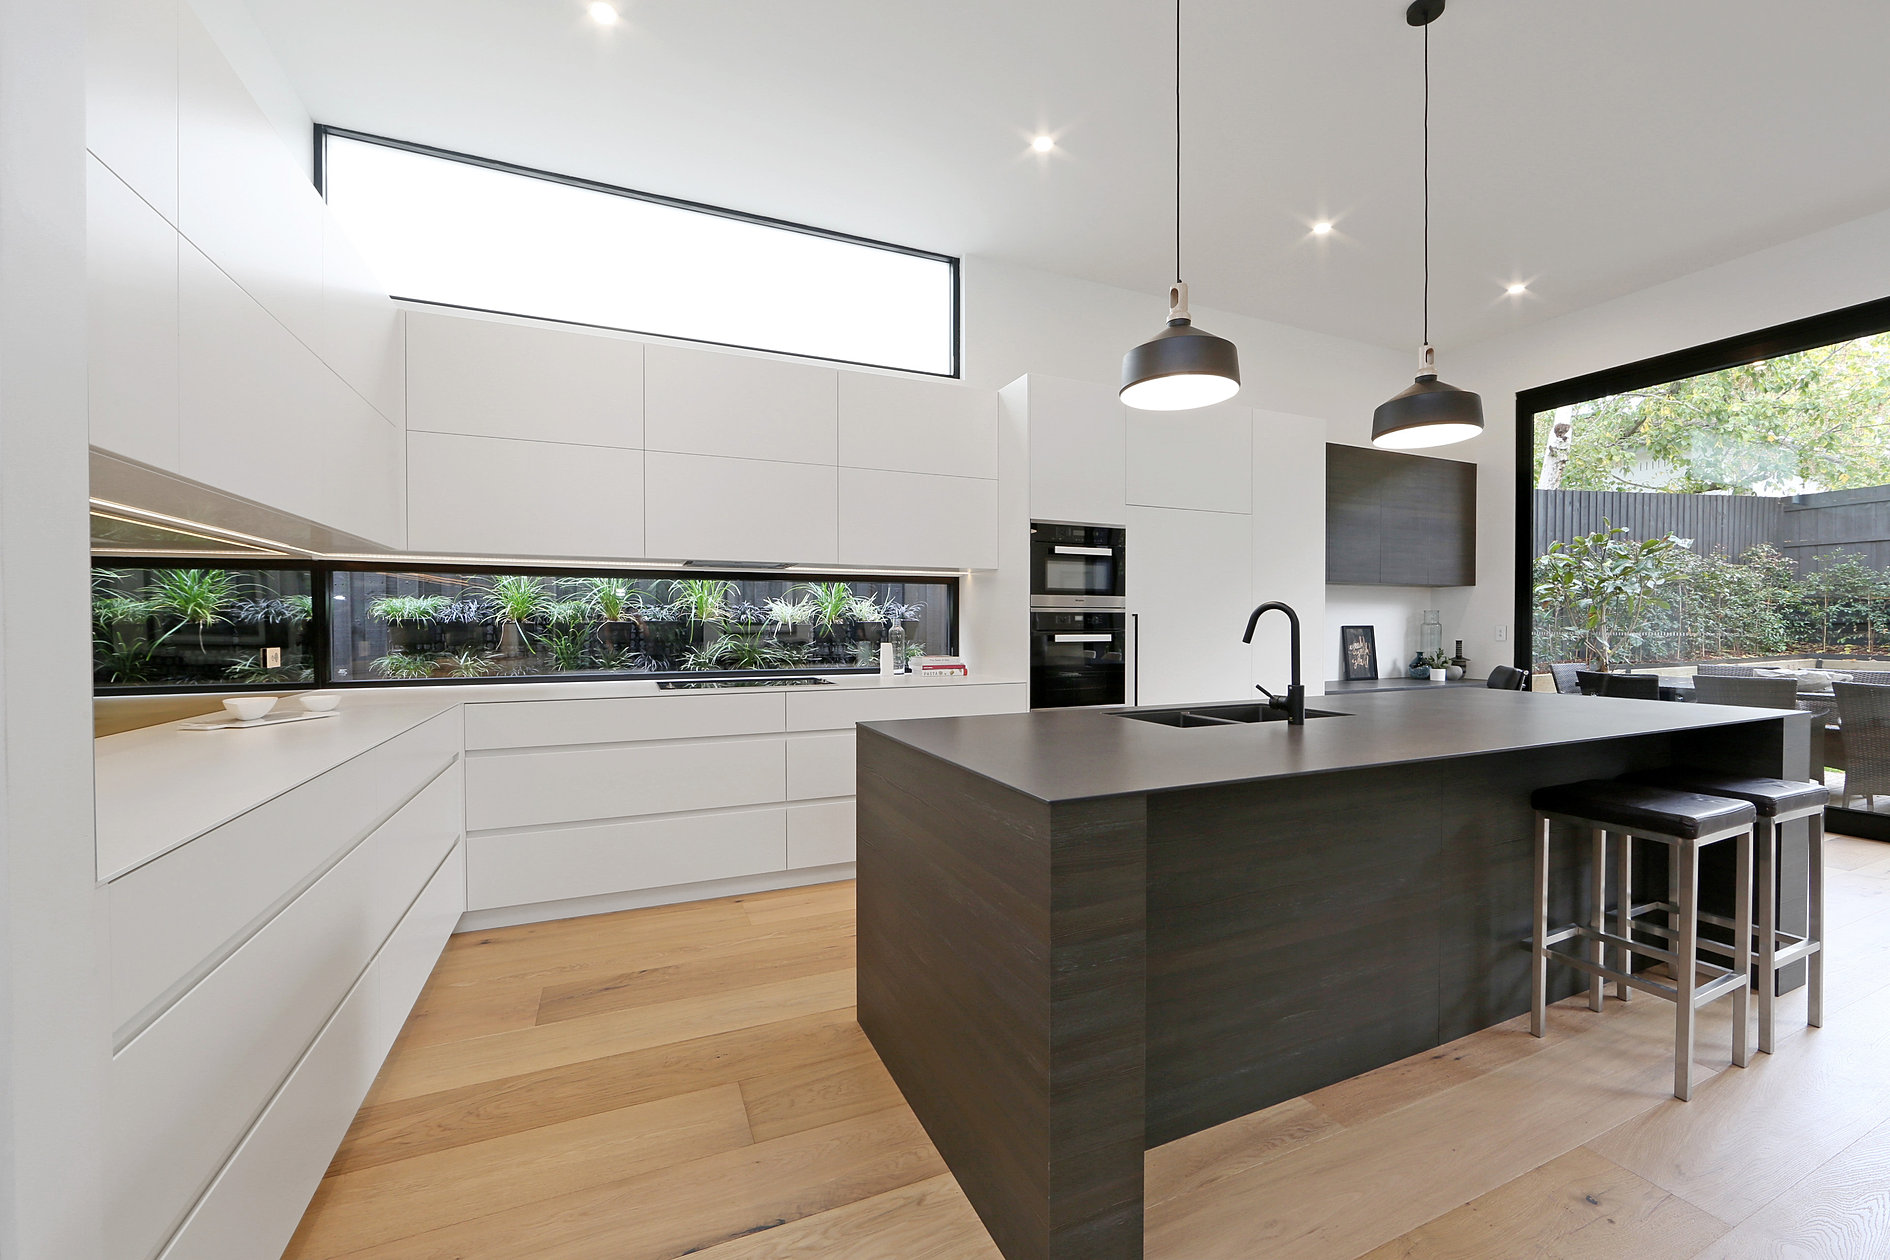 designer kitchens melbourne modern kitchen designs melbourne ddb design 2012 kitchen 763